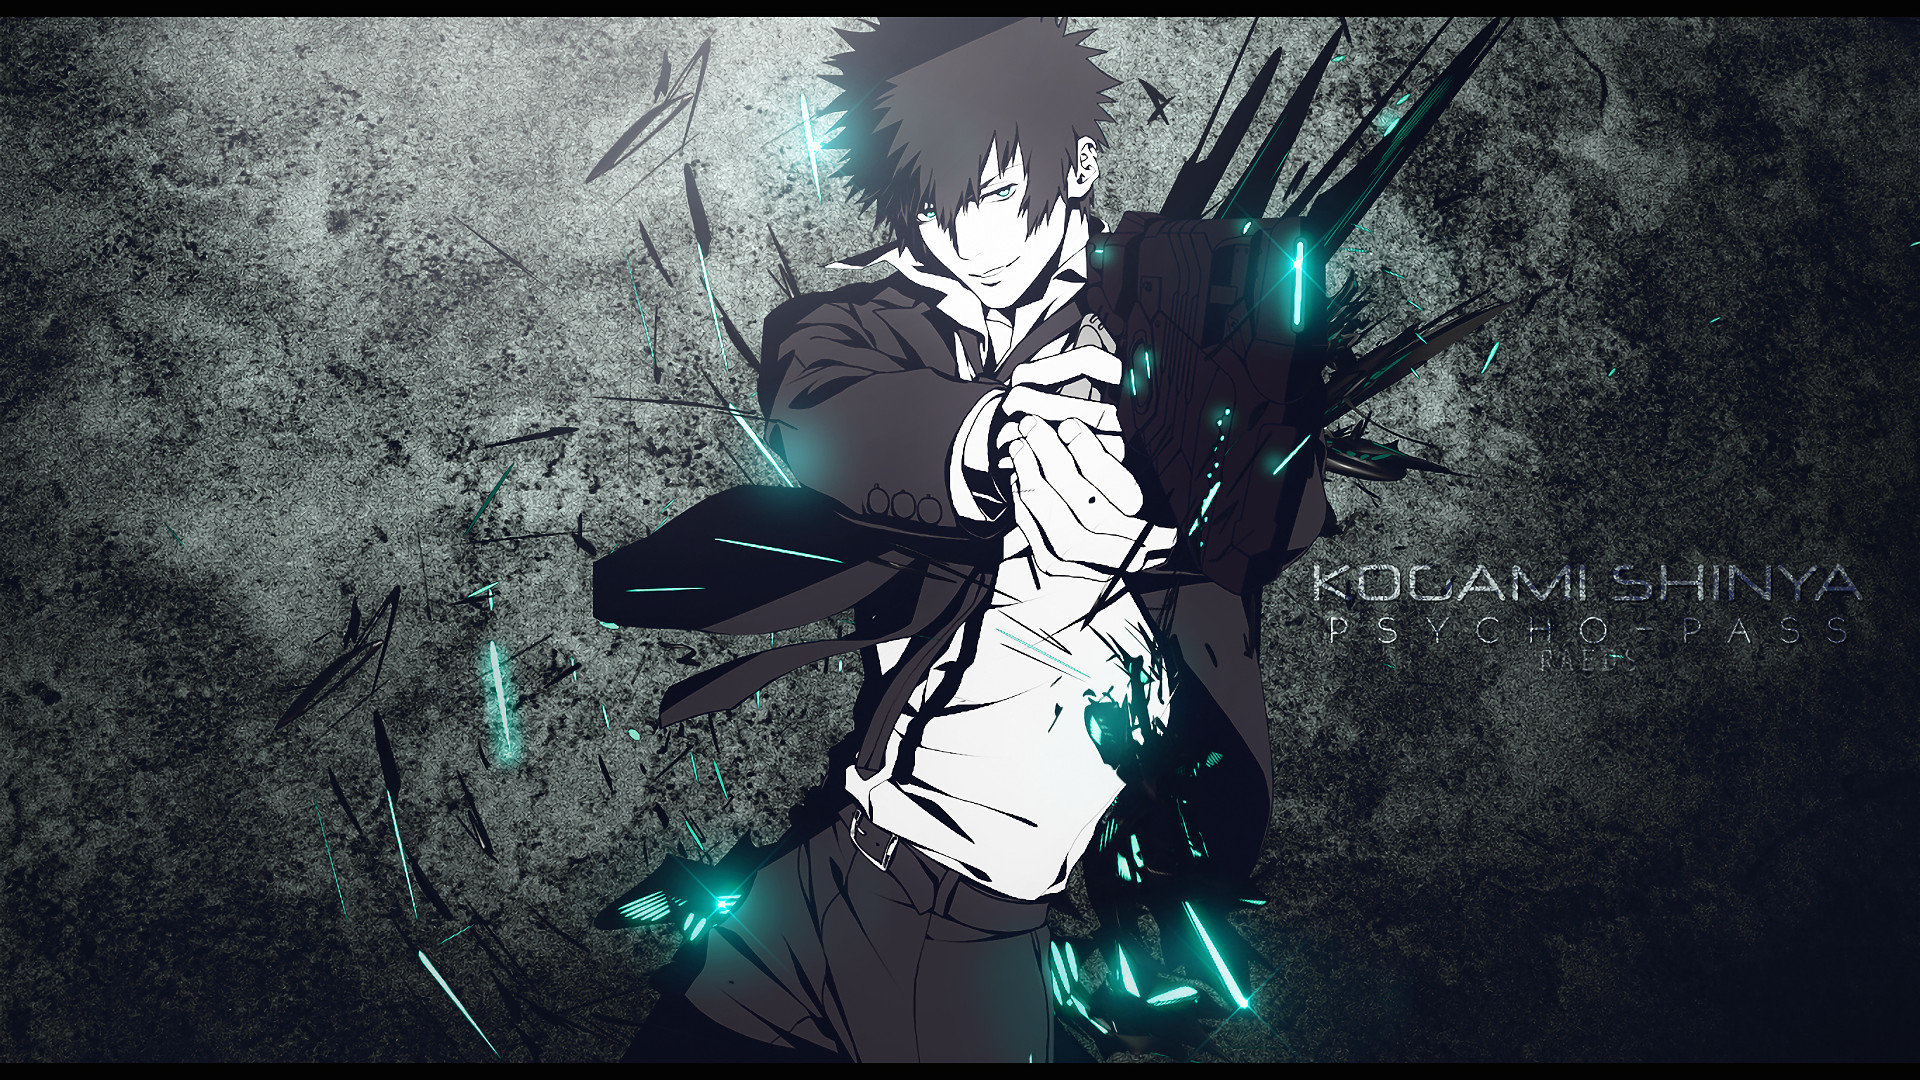 Download 1080p Psycho-Pass PC wallpaper ID:451806 for free